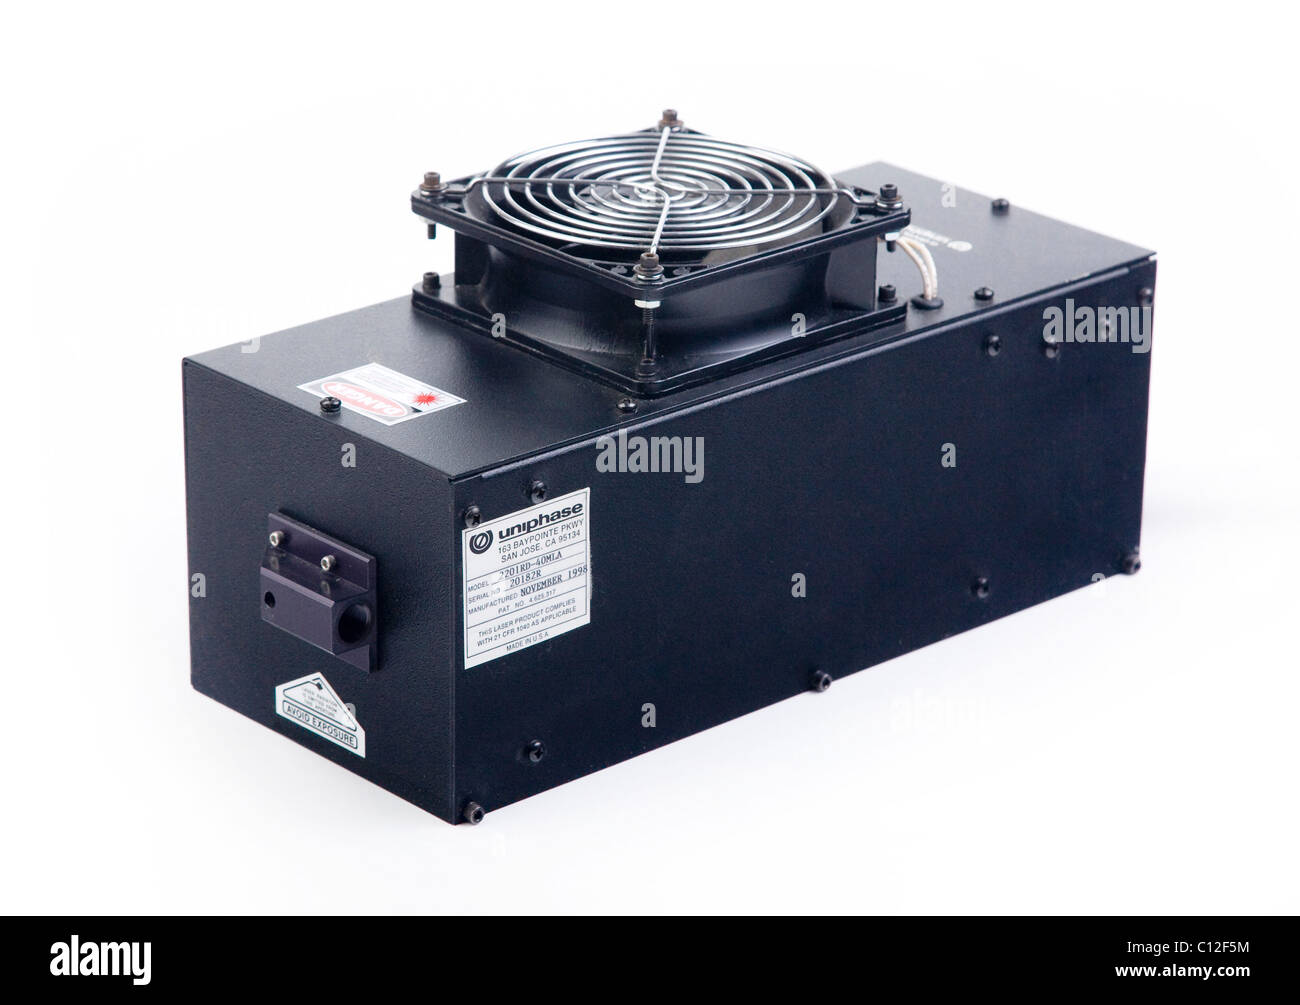 air cooled argon gas laser head output 40mW 457-512nm multiline wavelengths - Stock Image